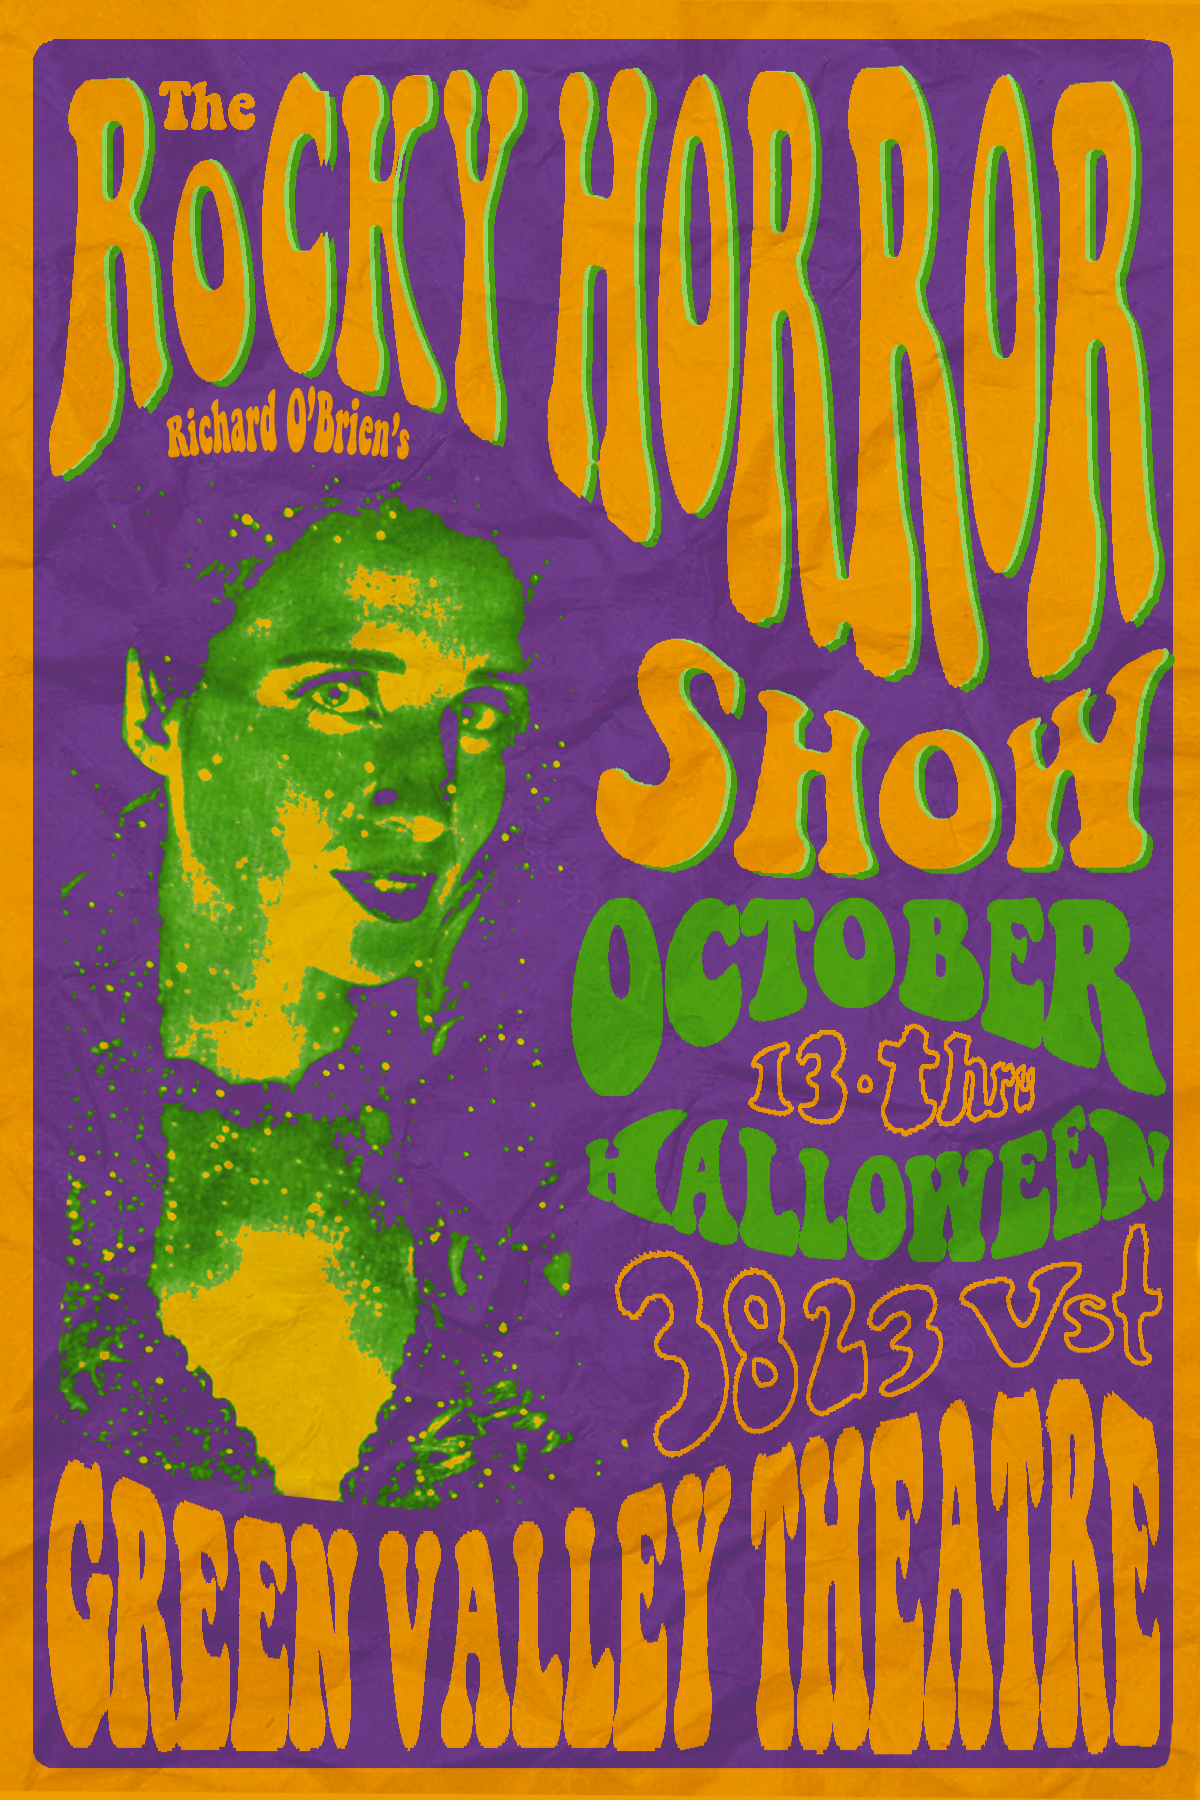 The Rocky Horror Show - Psychedelic! - October 13th-31stExplore